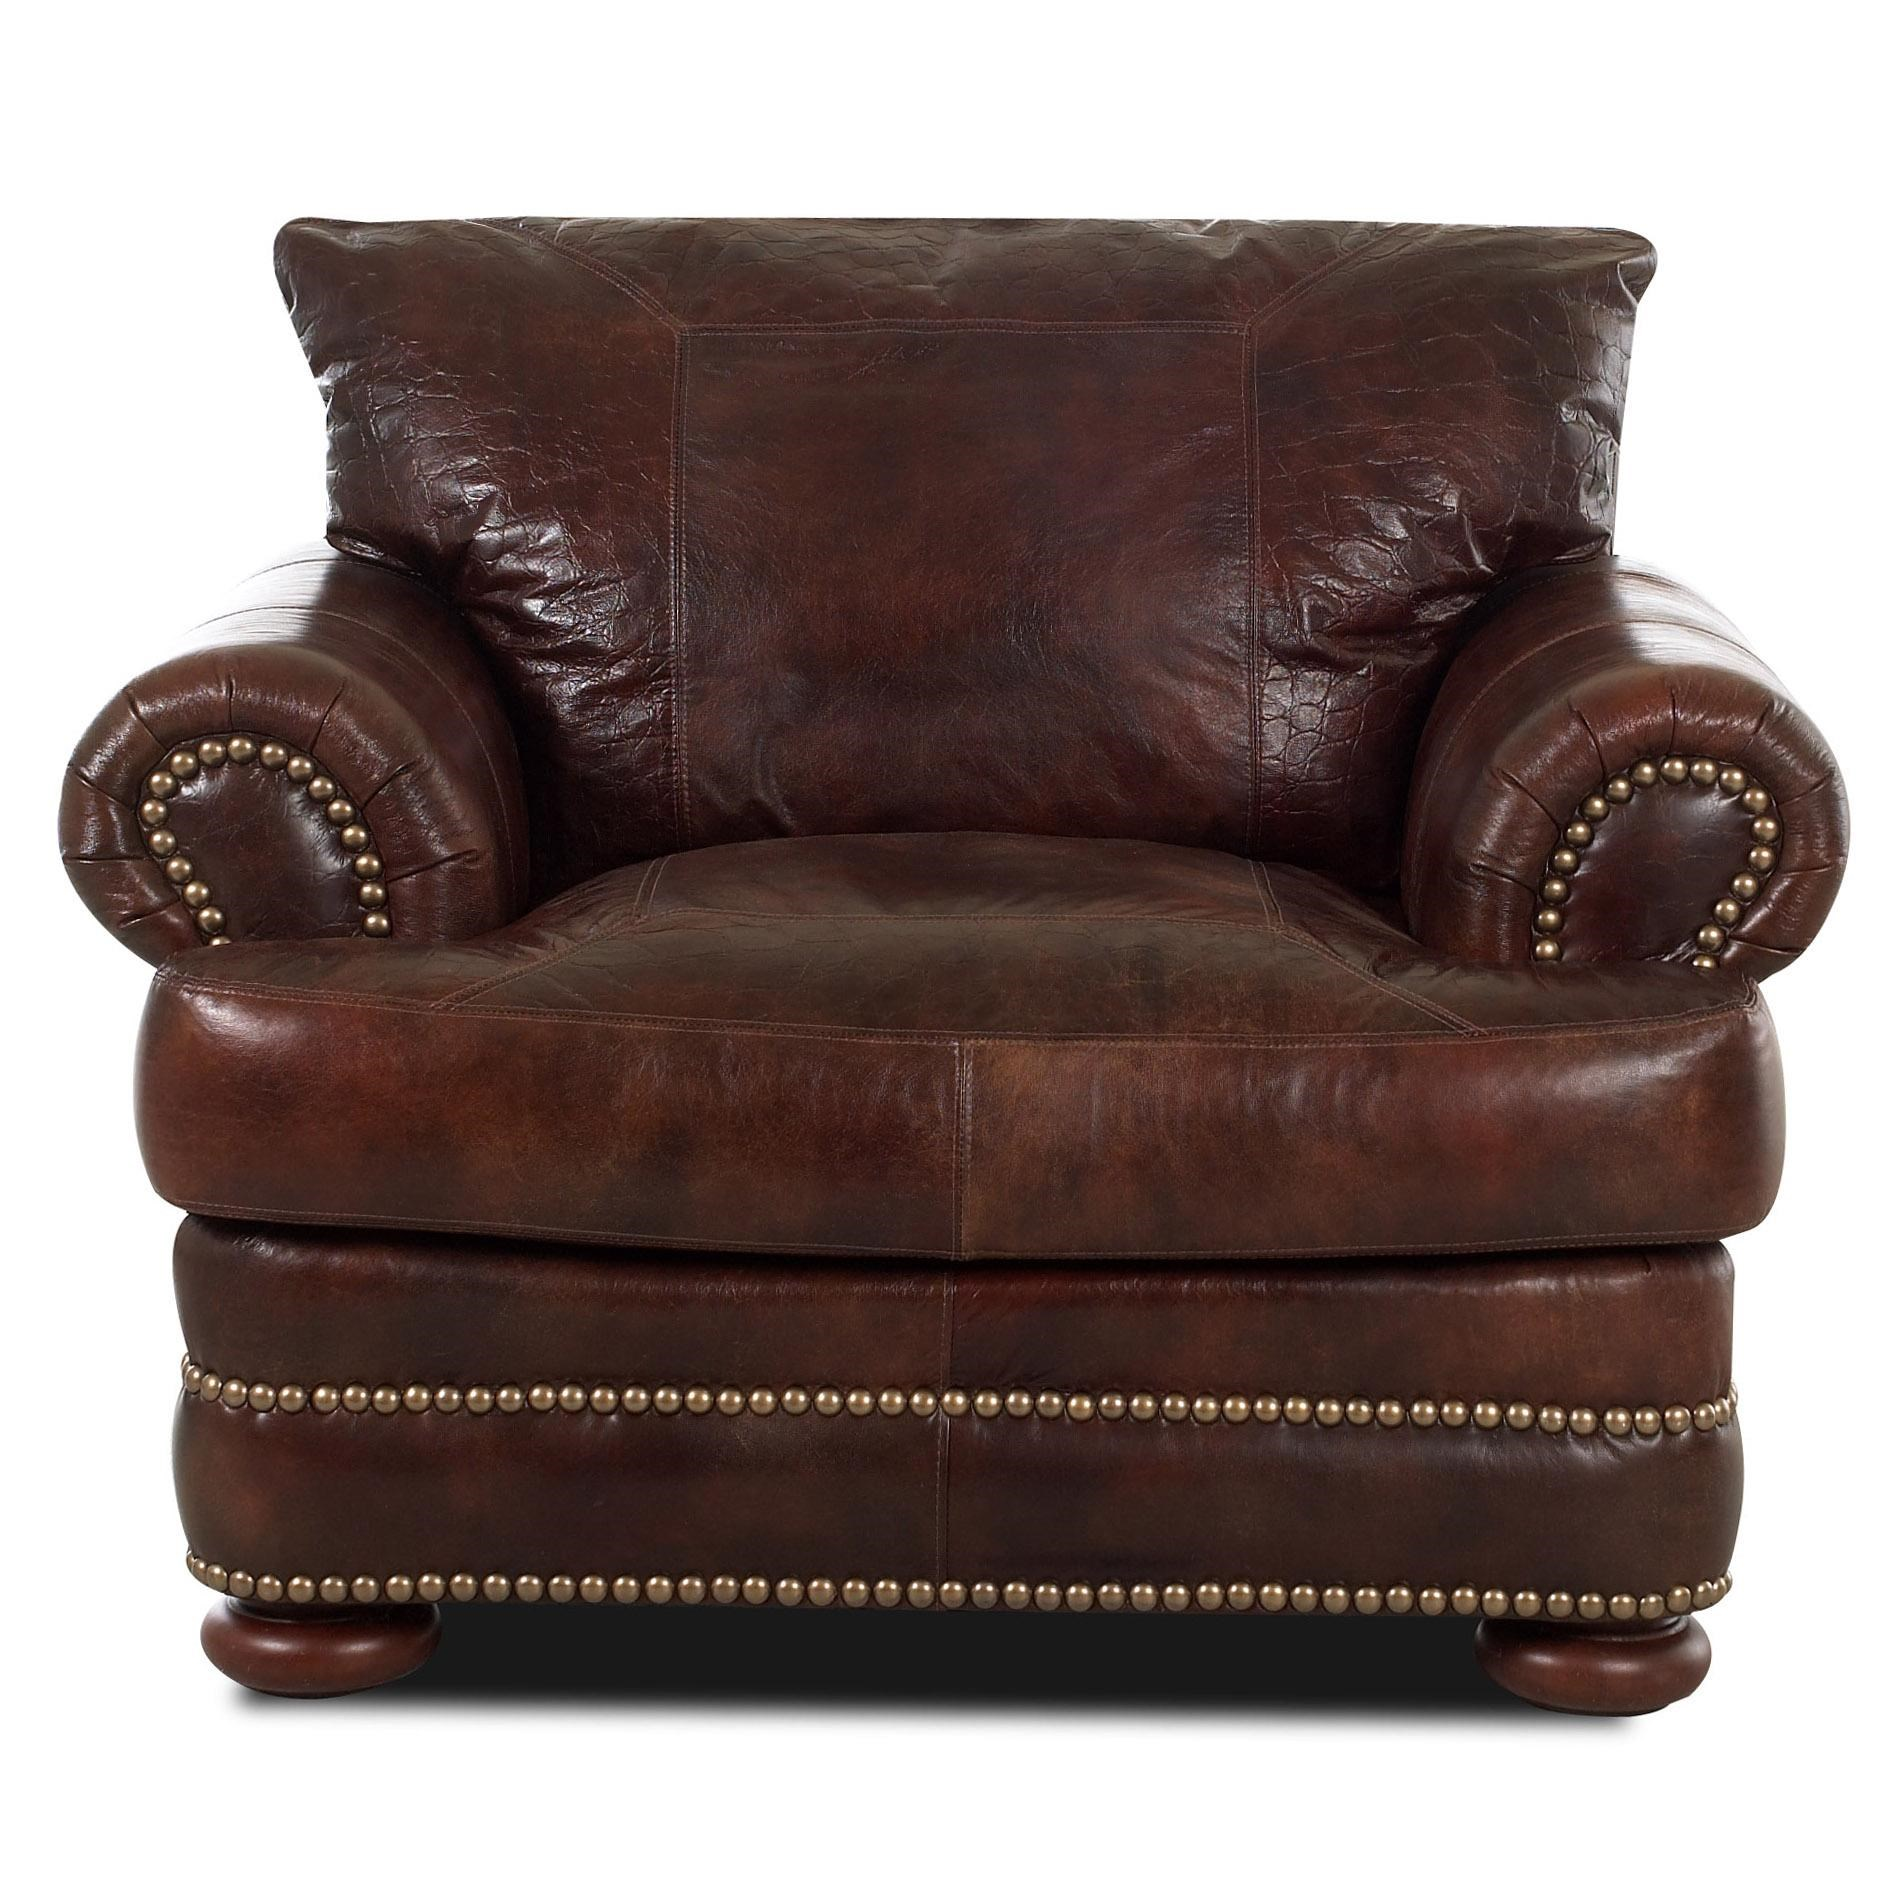 Klaussner Montezuma Leather Chair With Rolled Arms Value